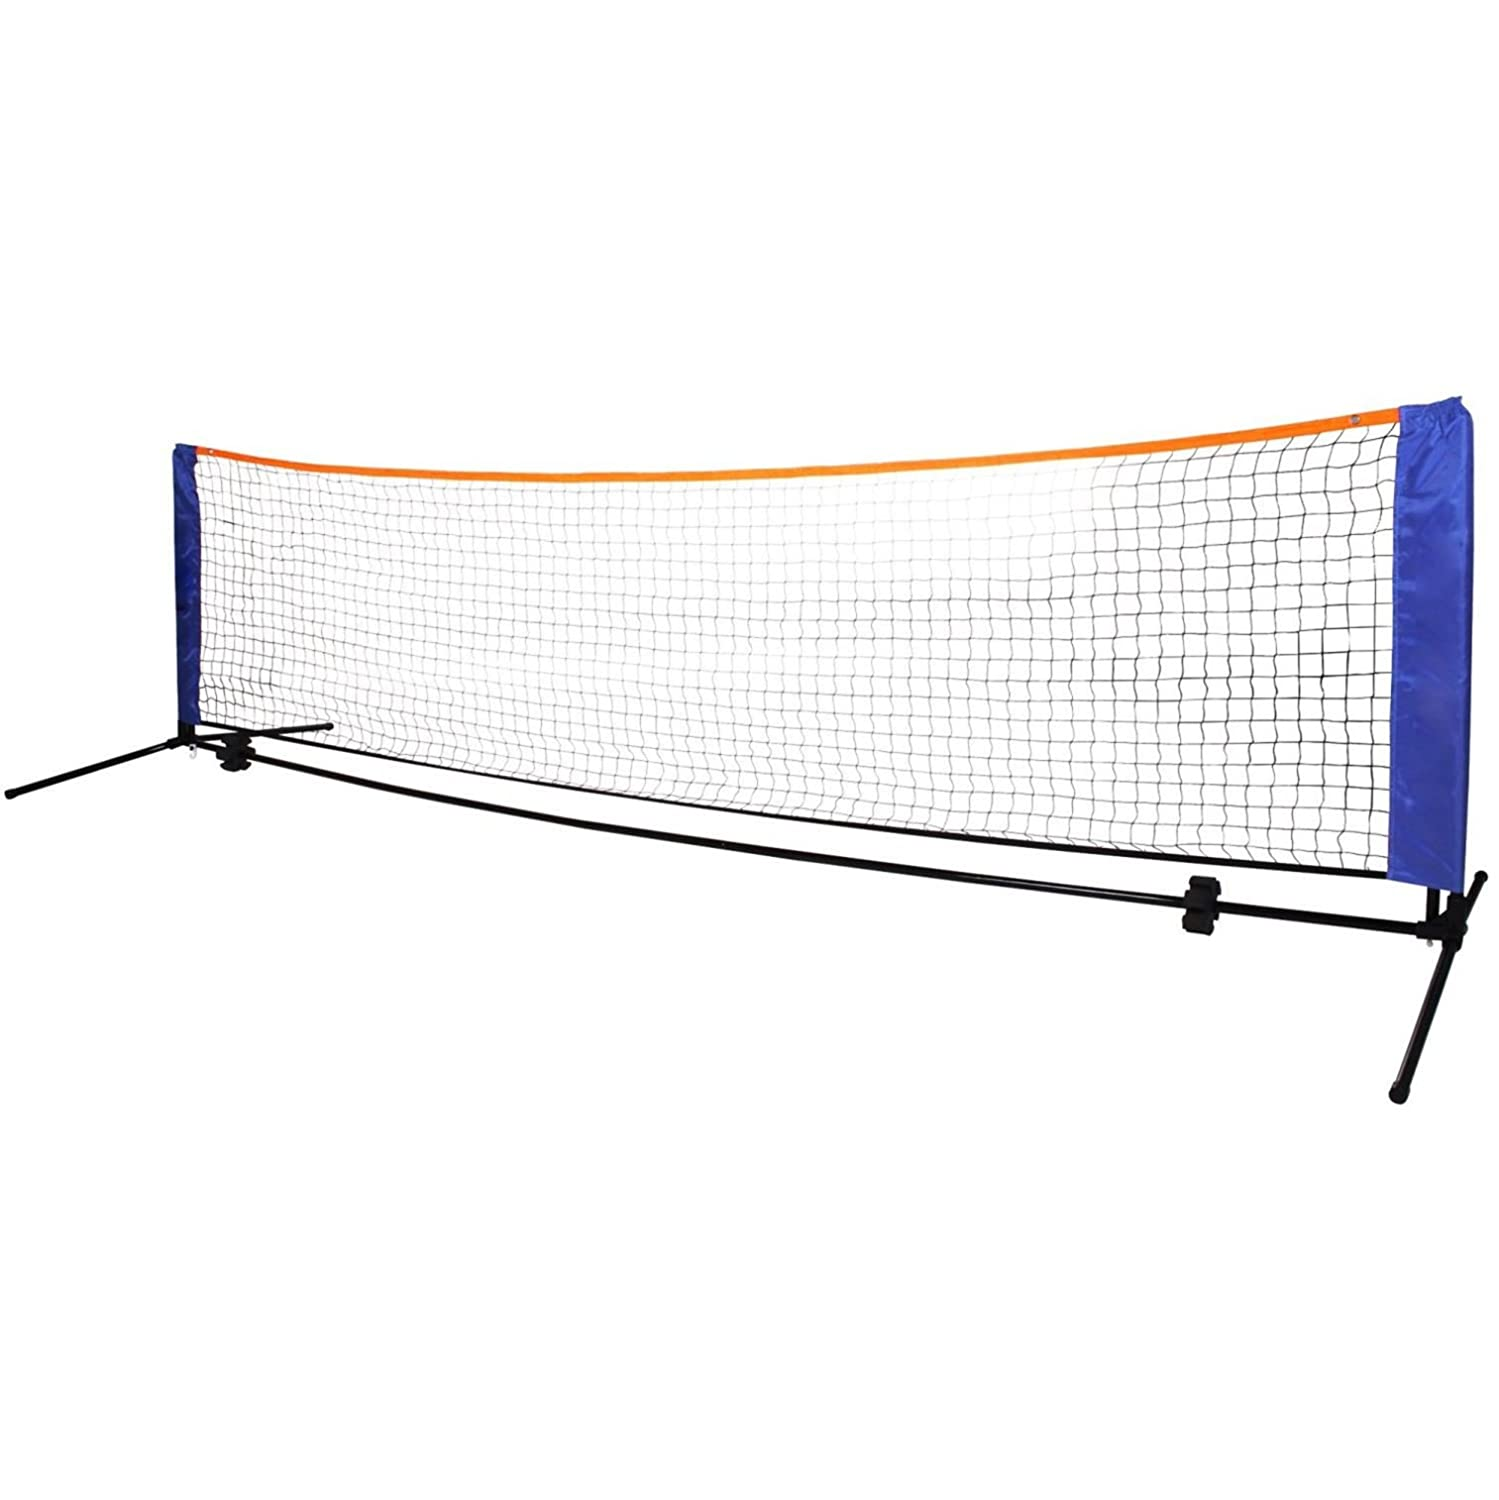 Oypla Volleyball Small 3m Adjustable Foldable Badminton Tennis Volleyball Oypla Net 84317c